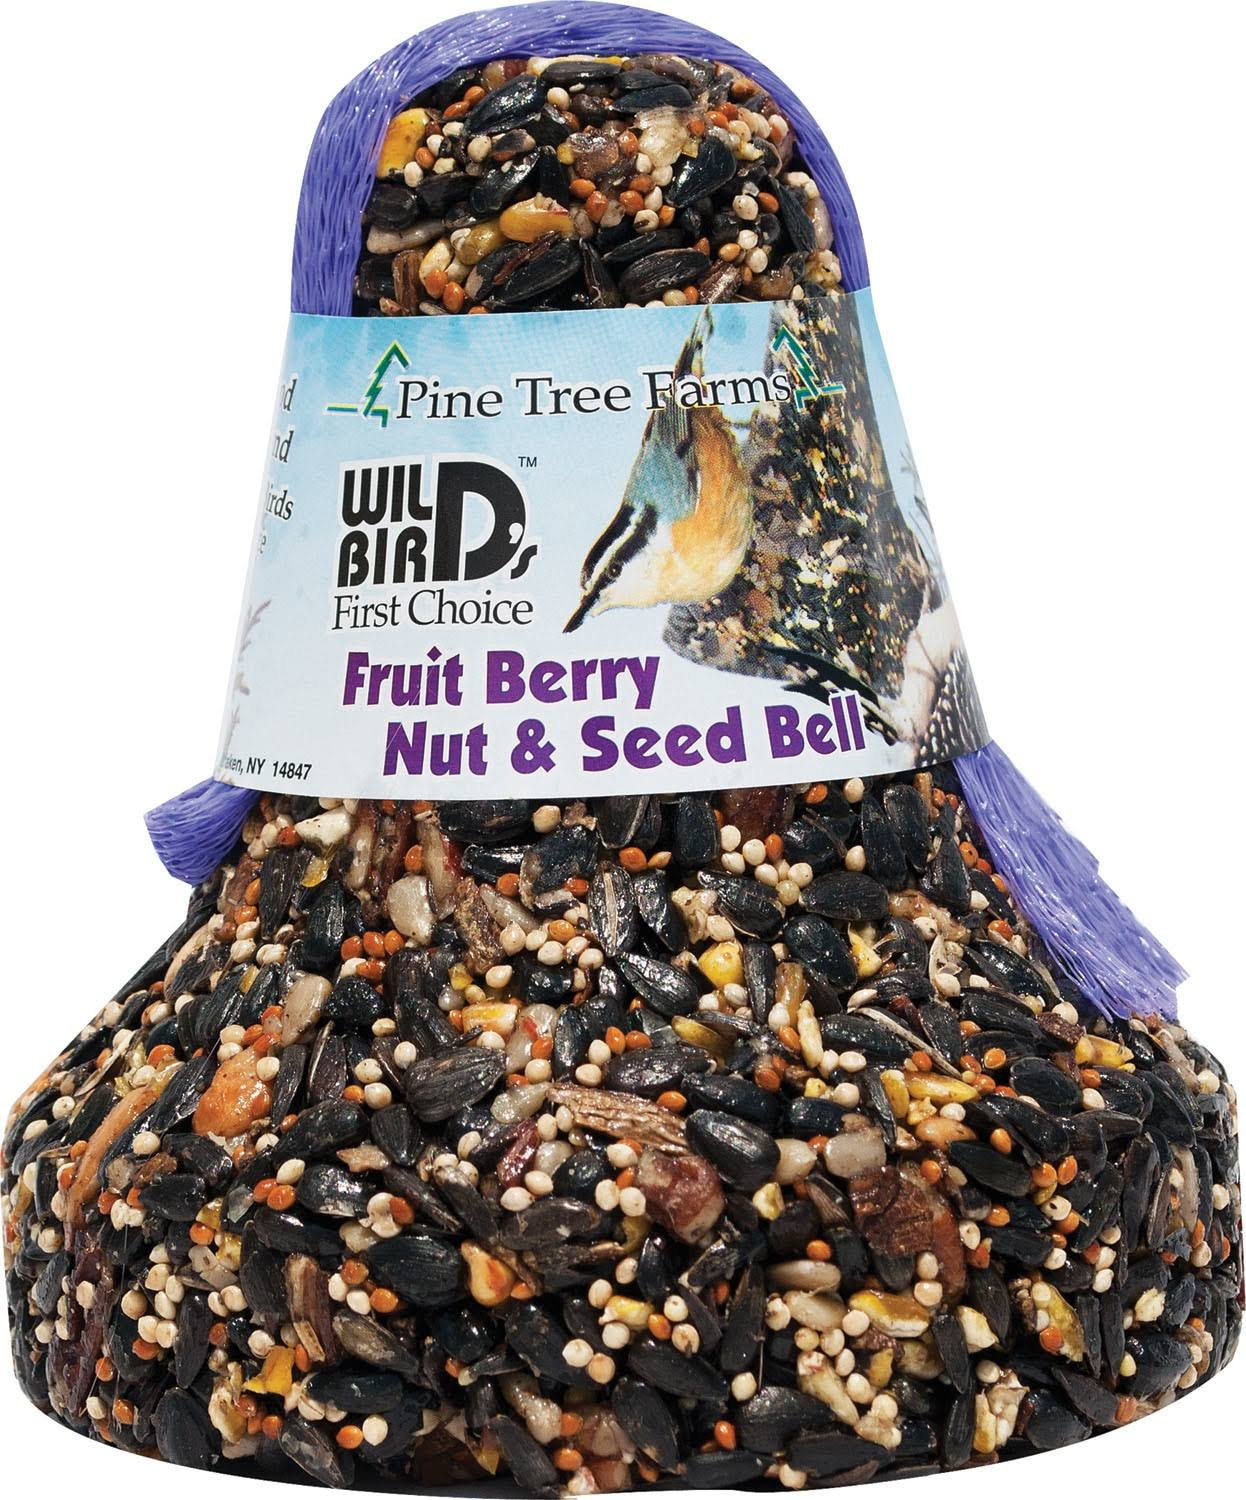 Pine Tree Farms Seed Bell - 16oz